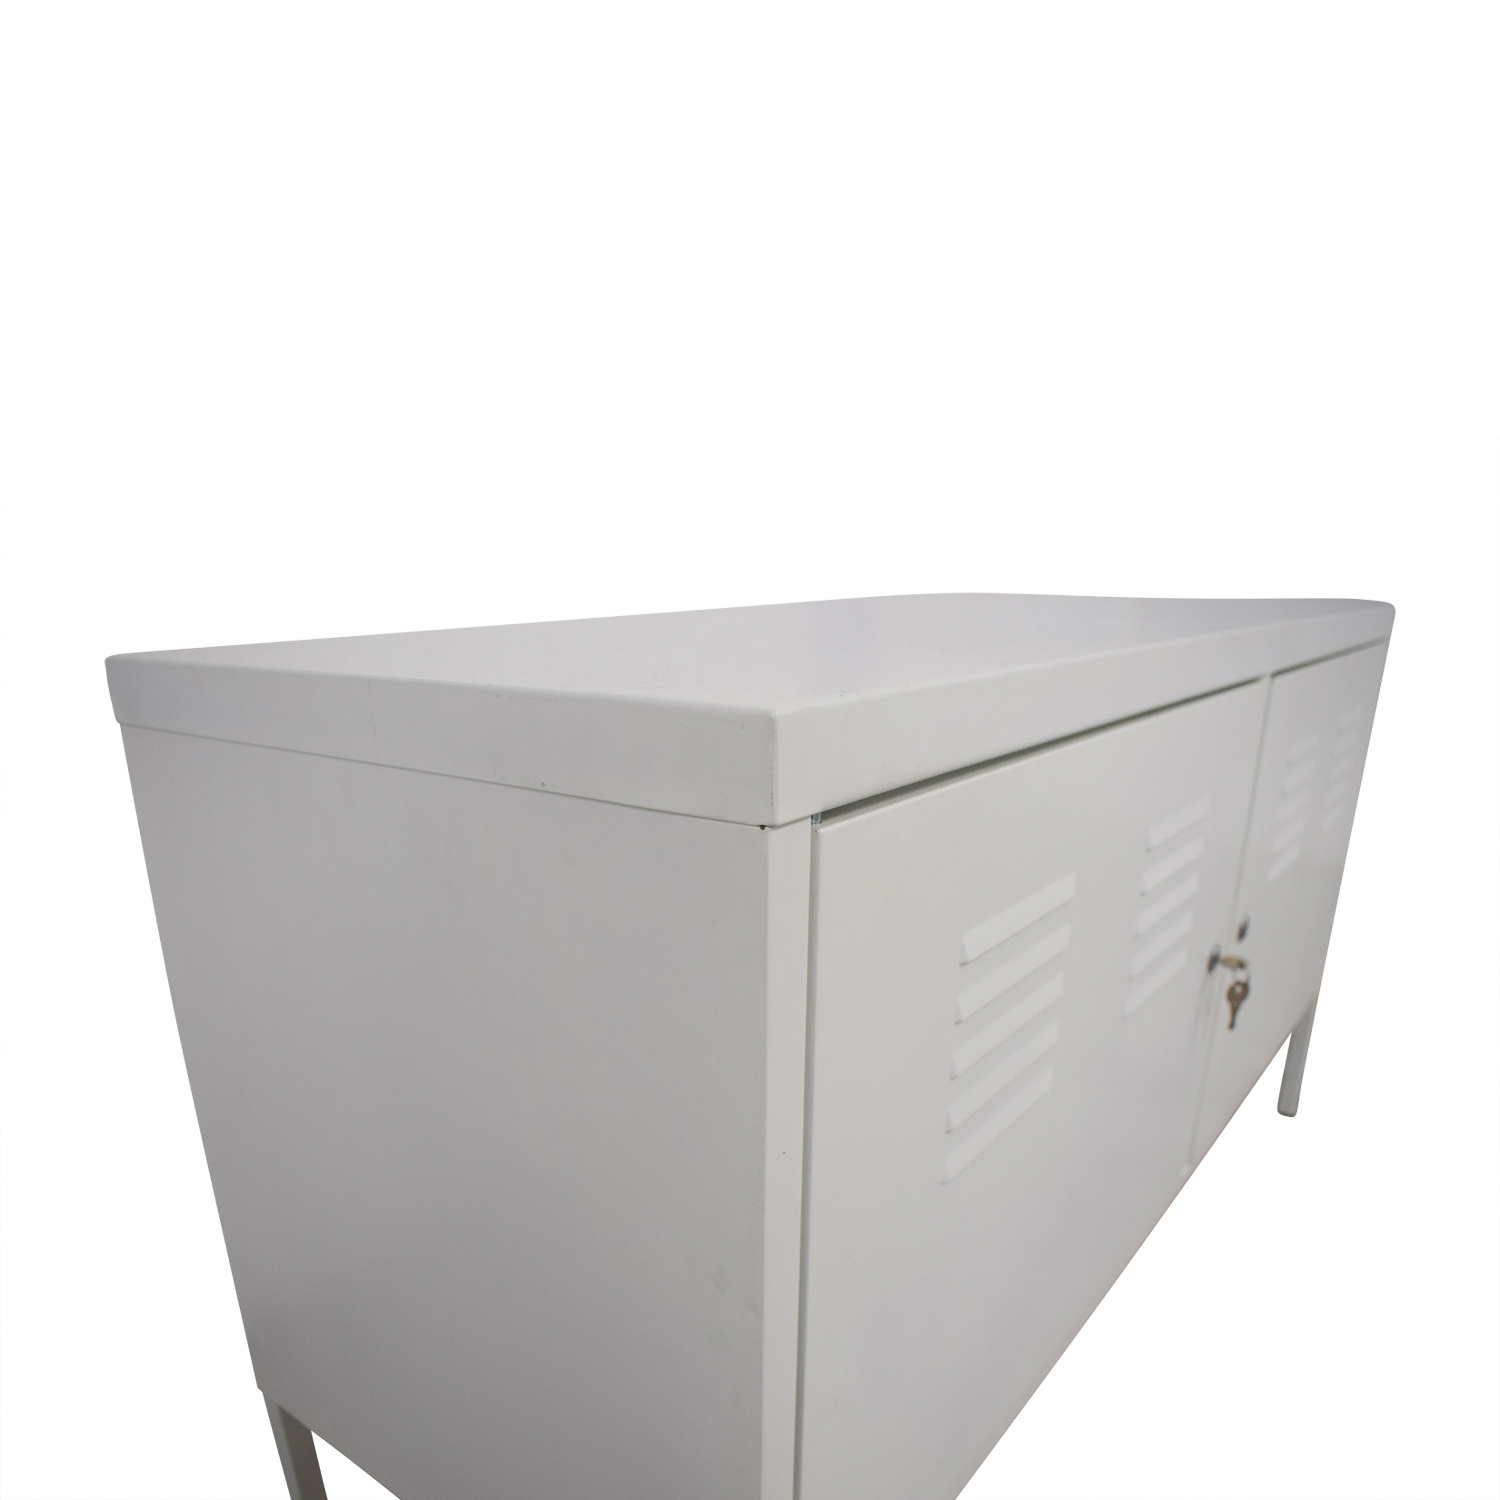 IKEA IKEA White Metal Locker Cabinet White